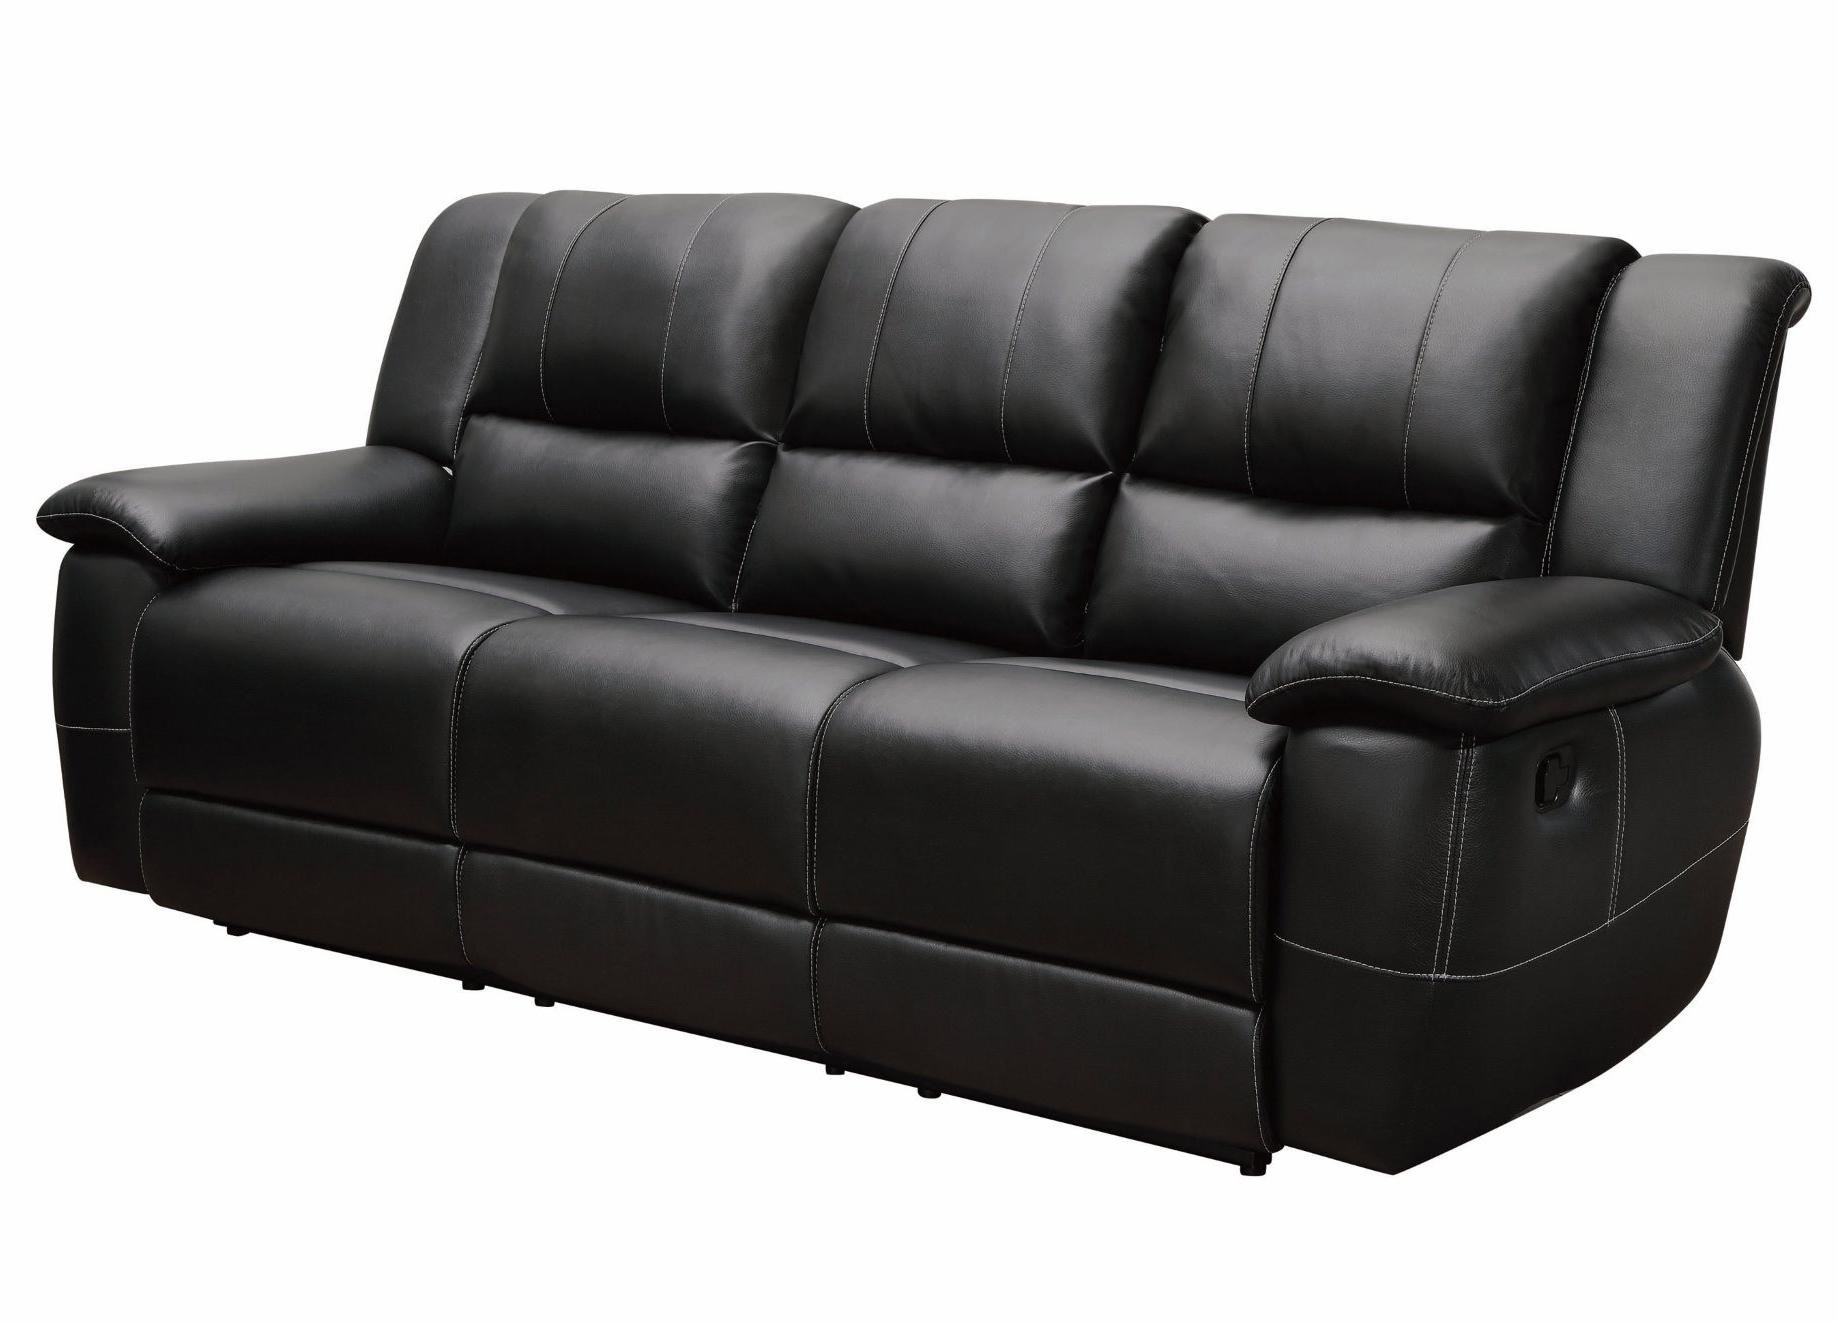 Coaster Lee Transitional Motion Sofa With Pillow Arms   Coaster Fine  Furniture